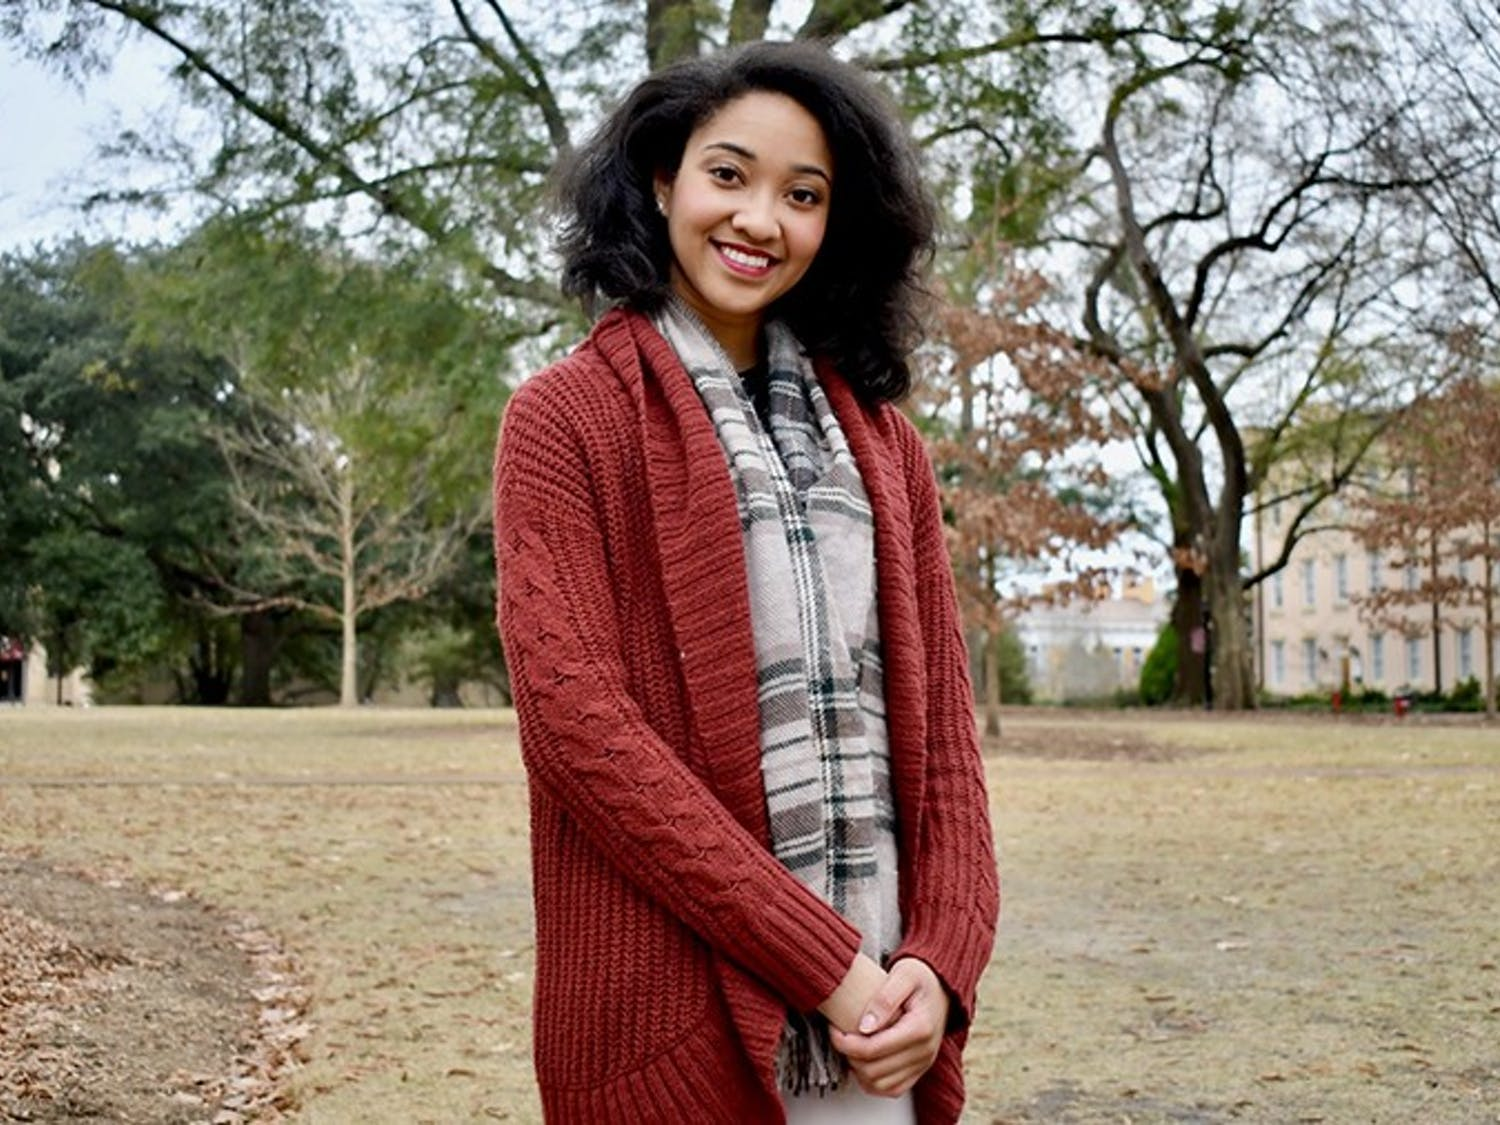 """Third-year business economics student Antonia Adams lost both of her parents within months of each other. Adams had to manage her parents' estate, along with her own grief, at 20 years old and now is planning to go to law school to """"help people overcome their circumstances."""""""